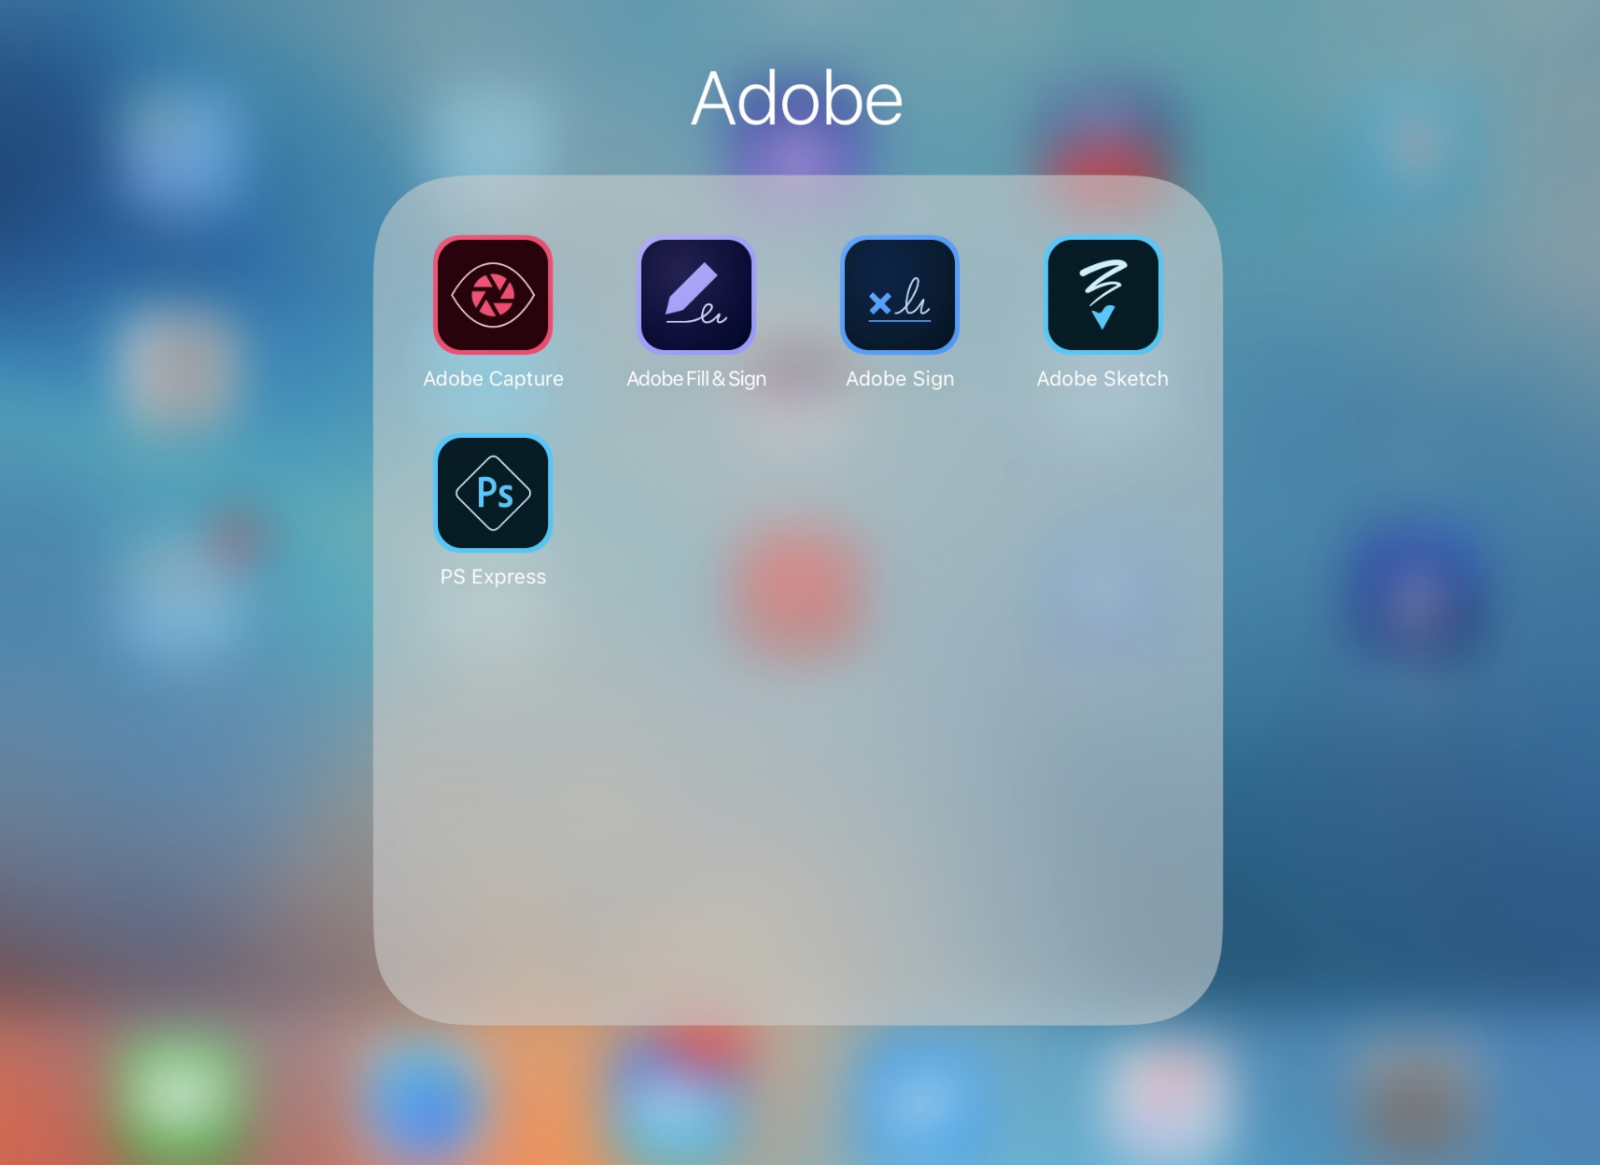 Adobe apps for iPad